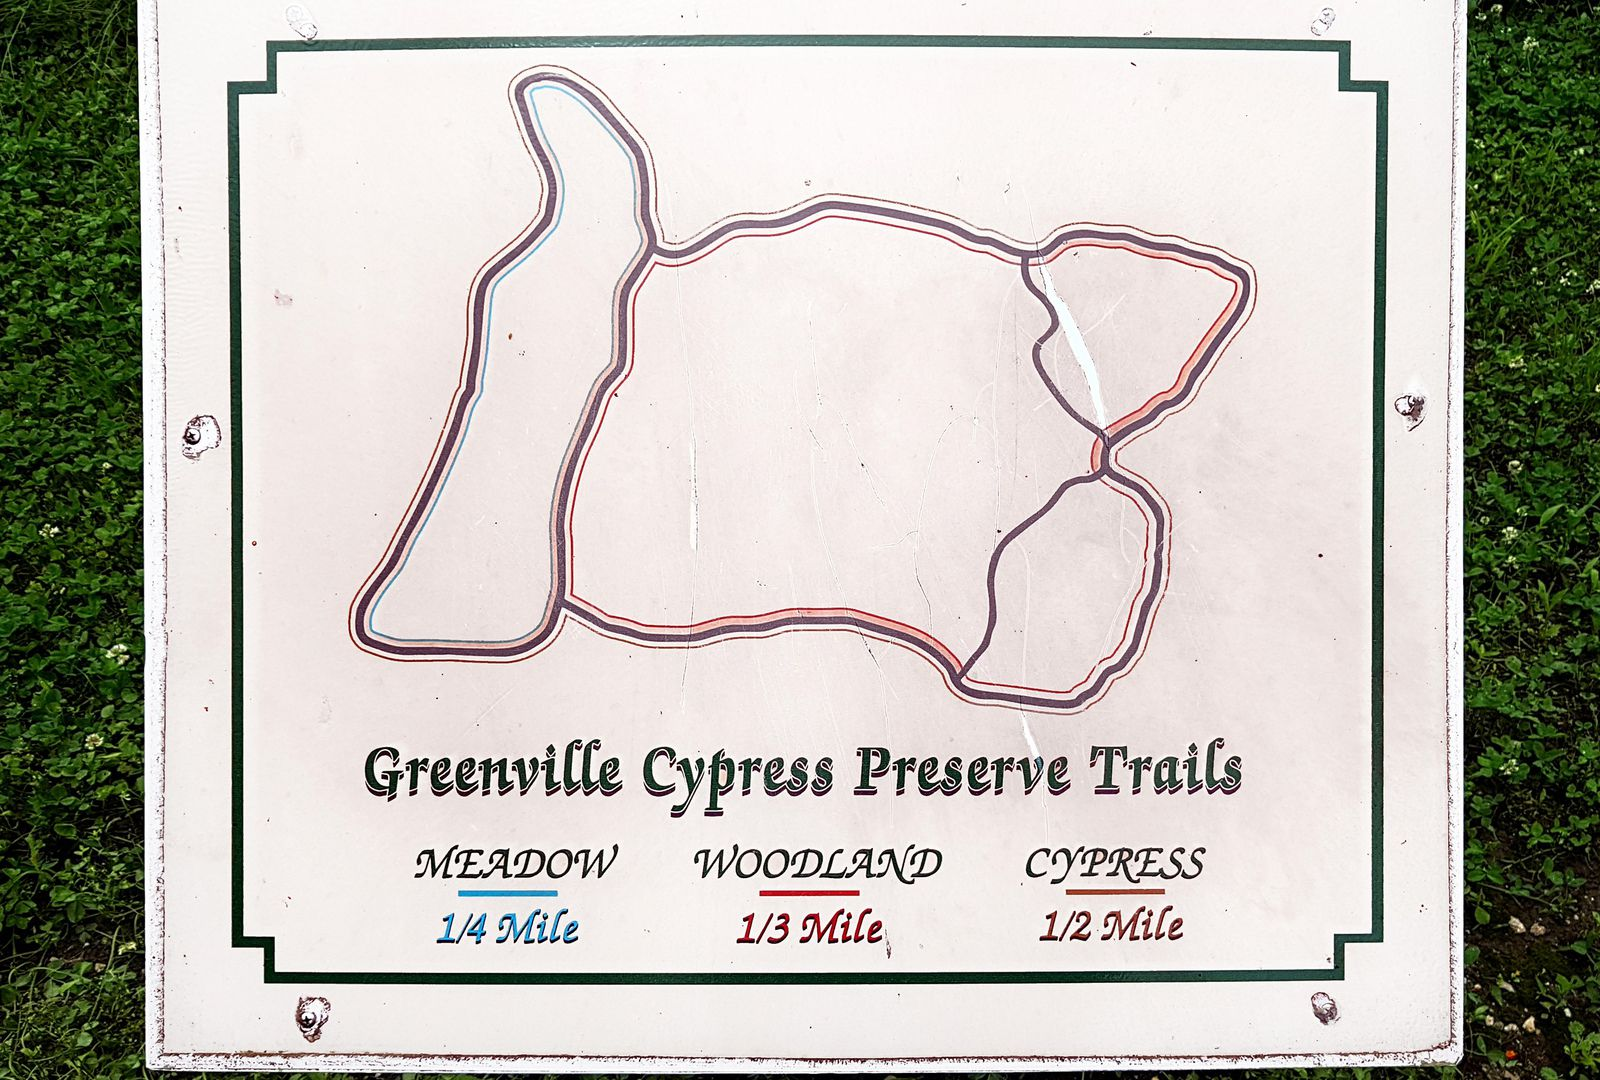 Greenville Cypress Preserve Trails carte